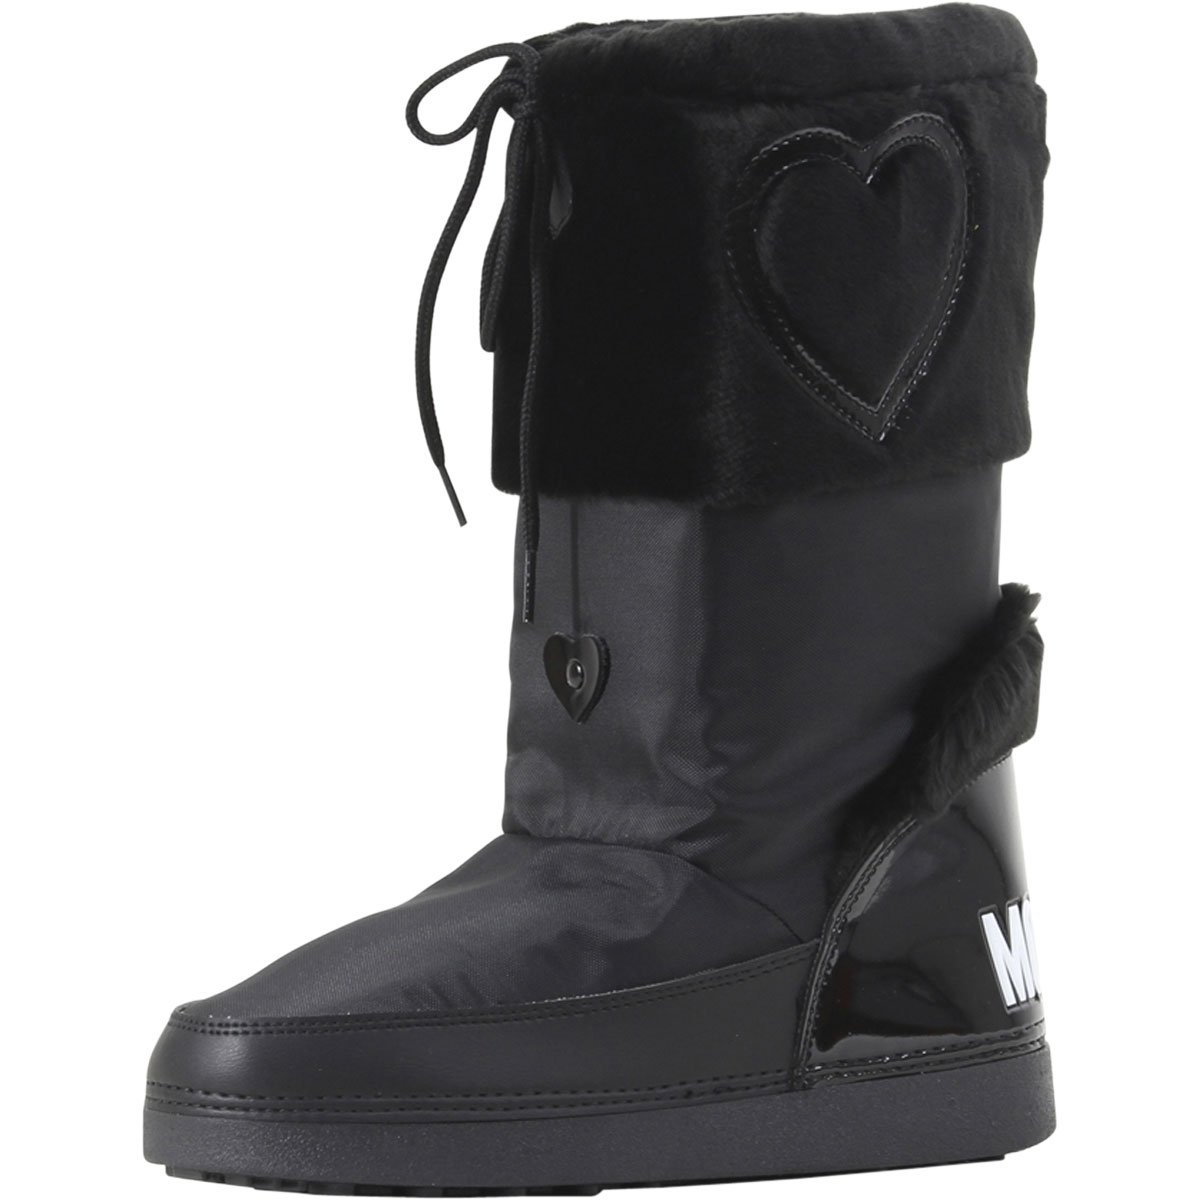 Love Moschino Women's Moon Boots Black 41 M EU